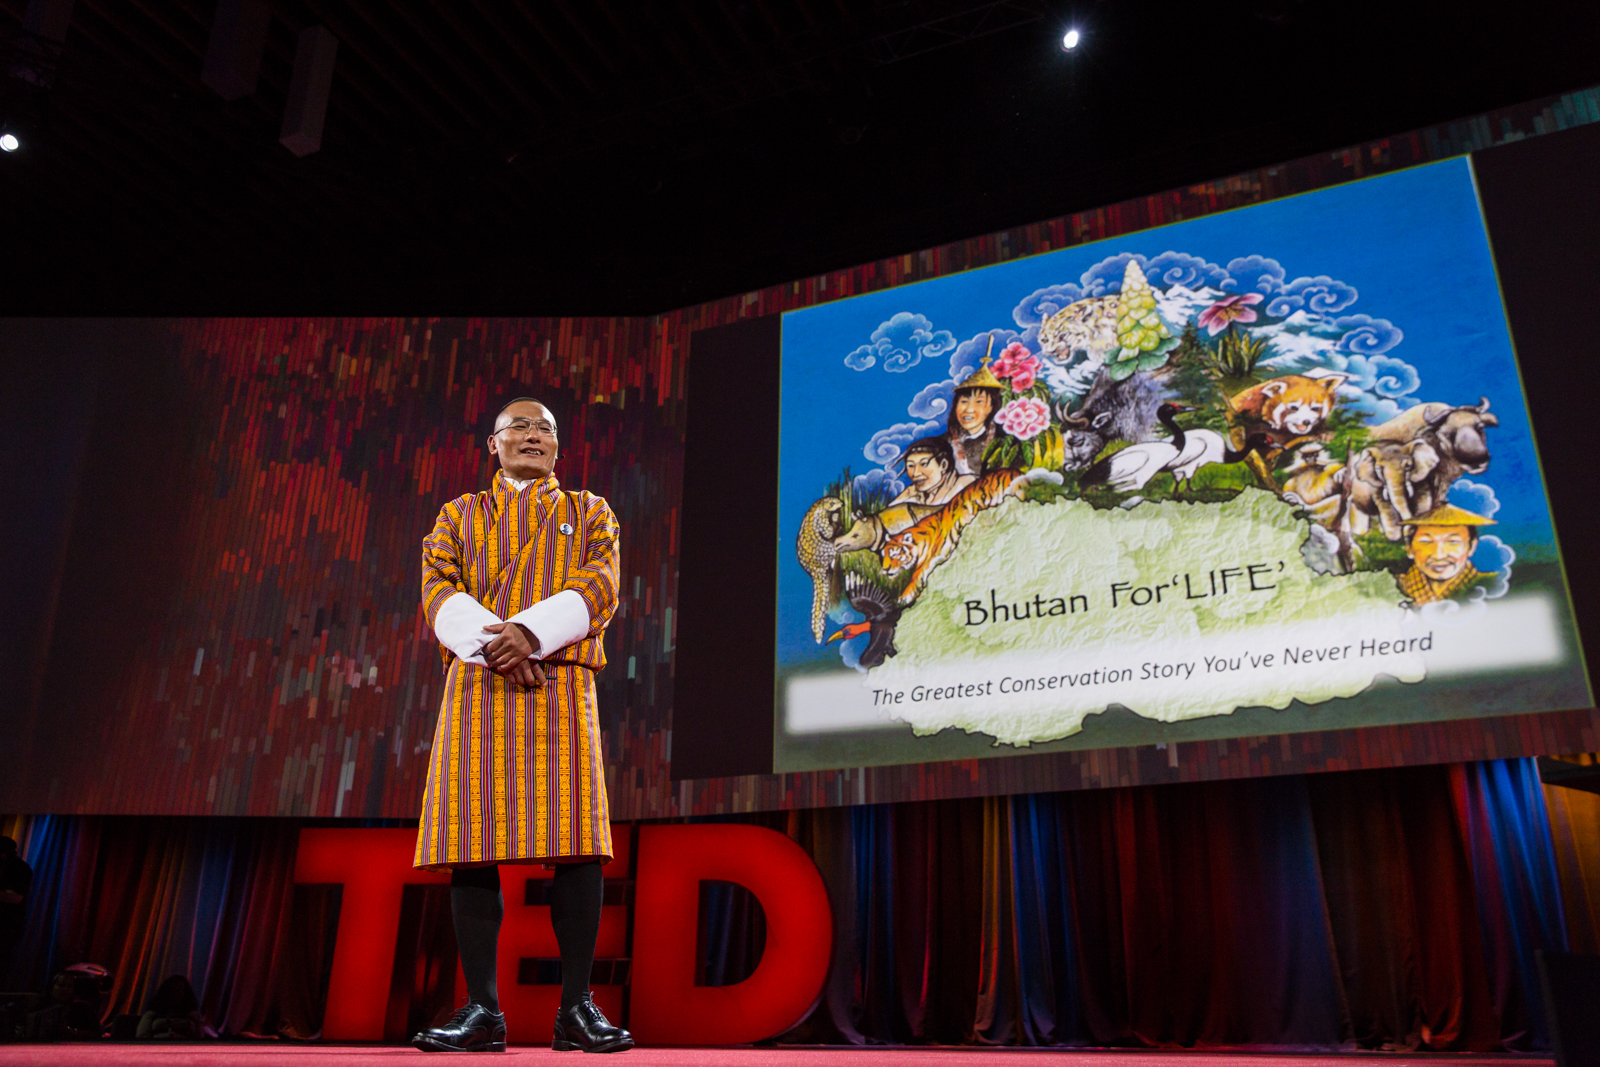 Tshering Tobgay speaks at TED2016 - Dream, February 15-19, 2016, Vancouver Convention Center, Vancouver, Canada. Photo: Bret Hartman / TED